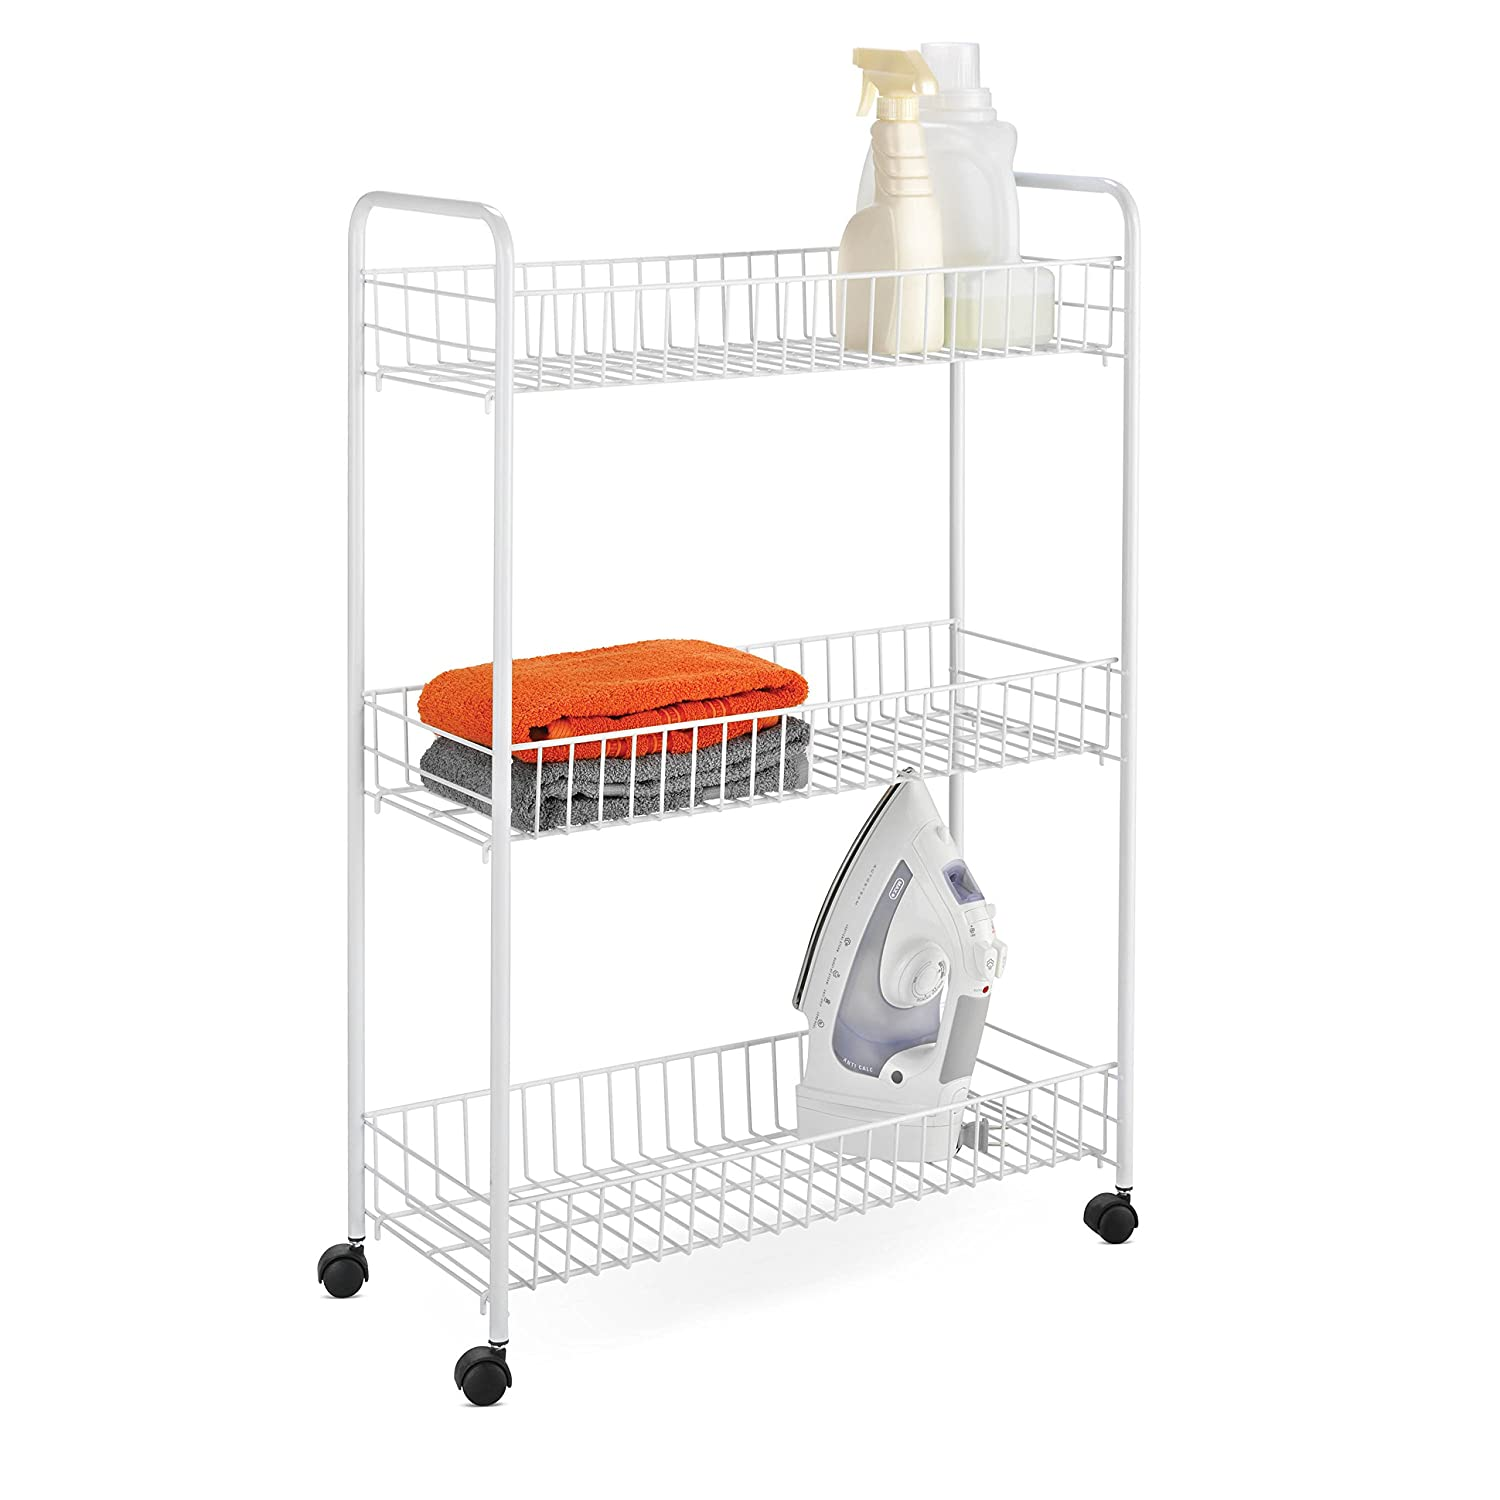 Exceptional Amazon.com: Honey Can Do CRT 01149 3 Tier Laundry Cart, White: Home U0026  Kitchen